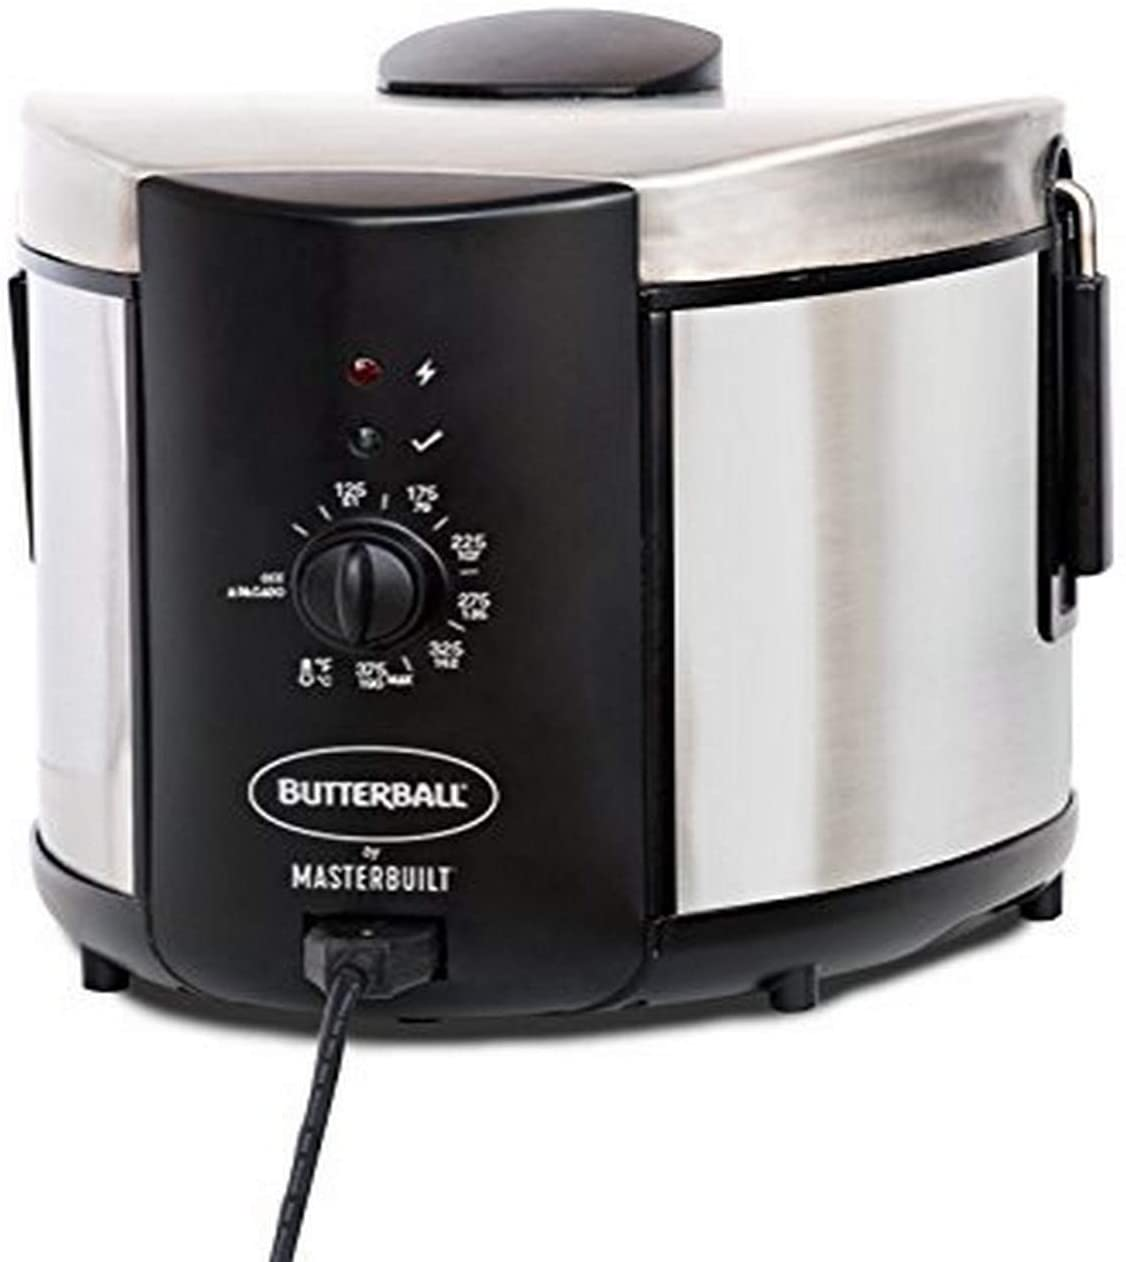 Stainless Steel and Black Electric Fryer with cord